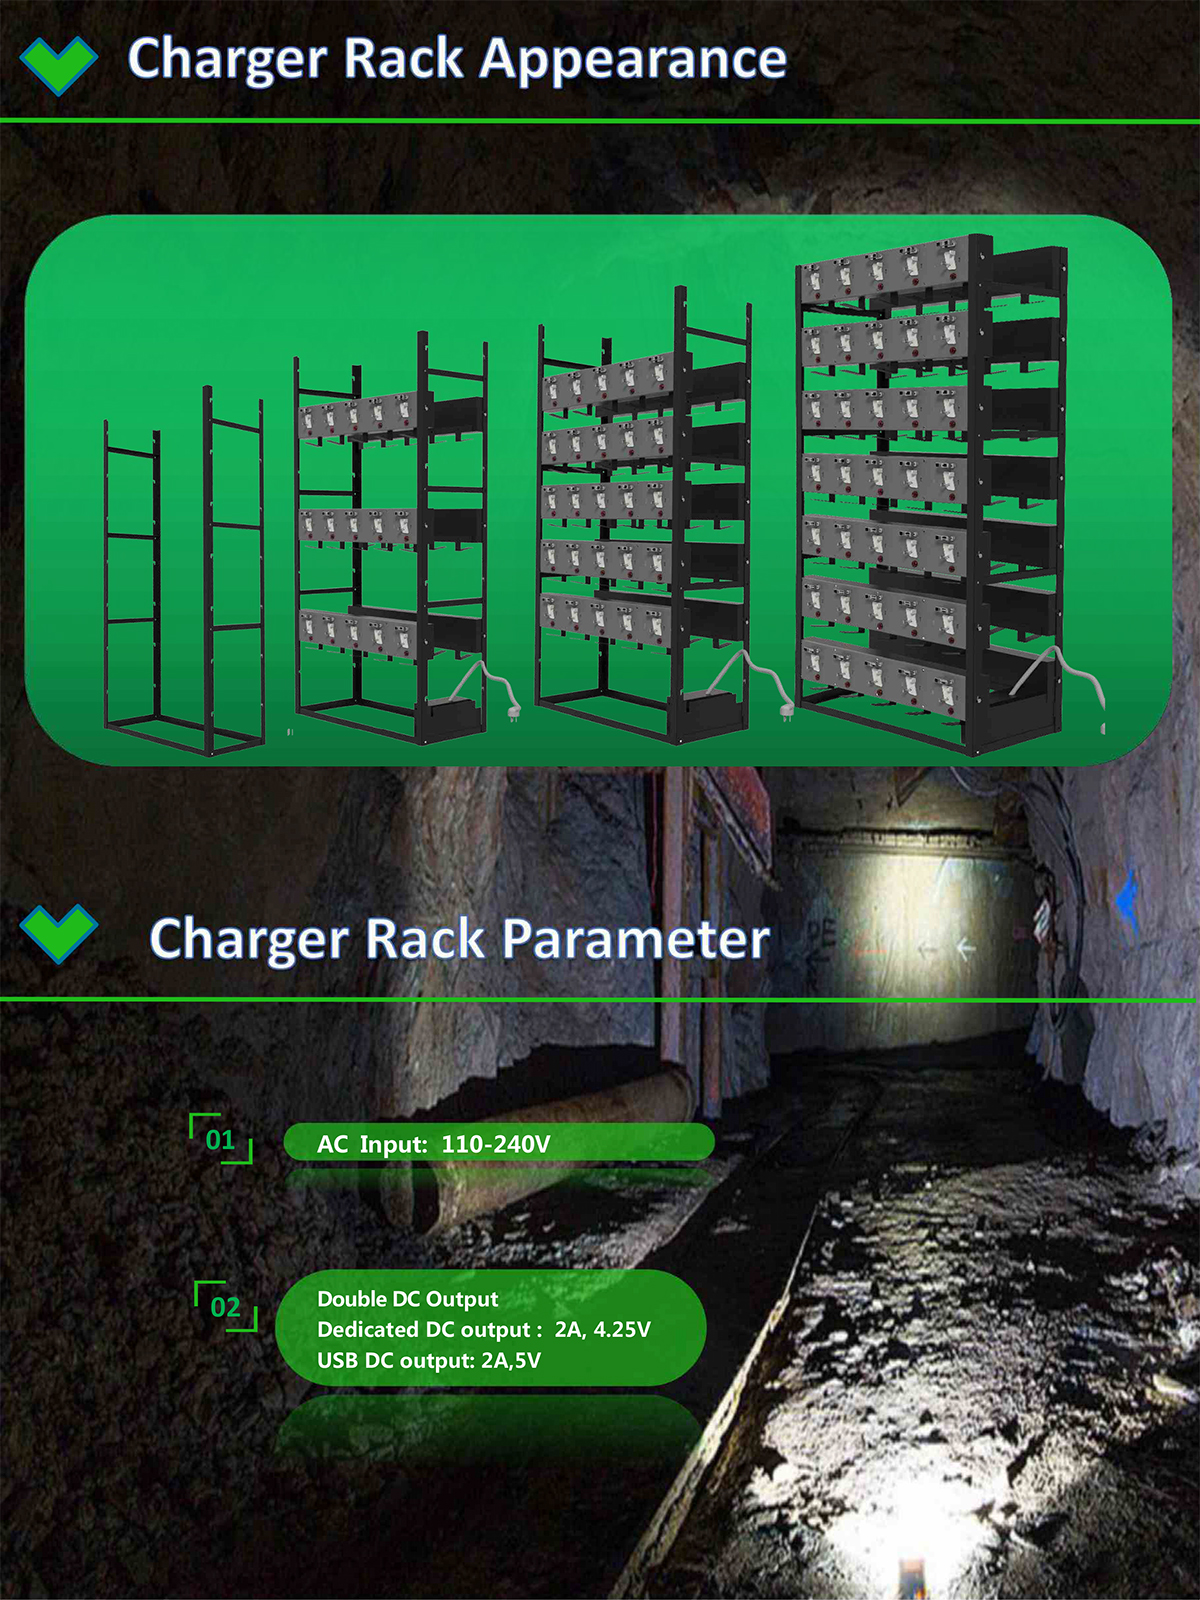 60 units charger rack with FCC